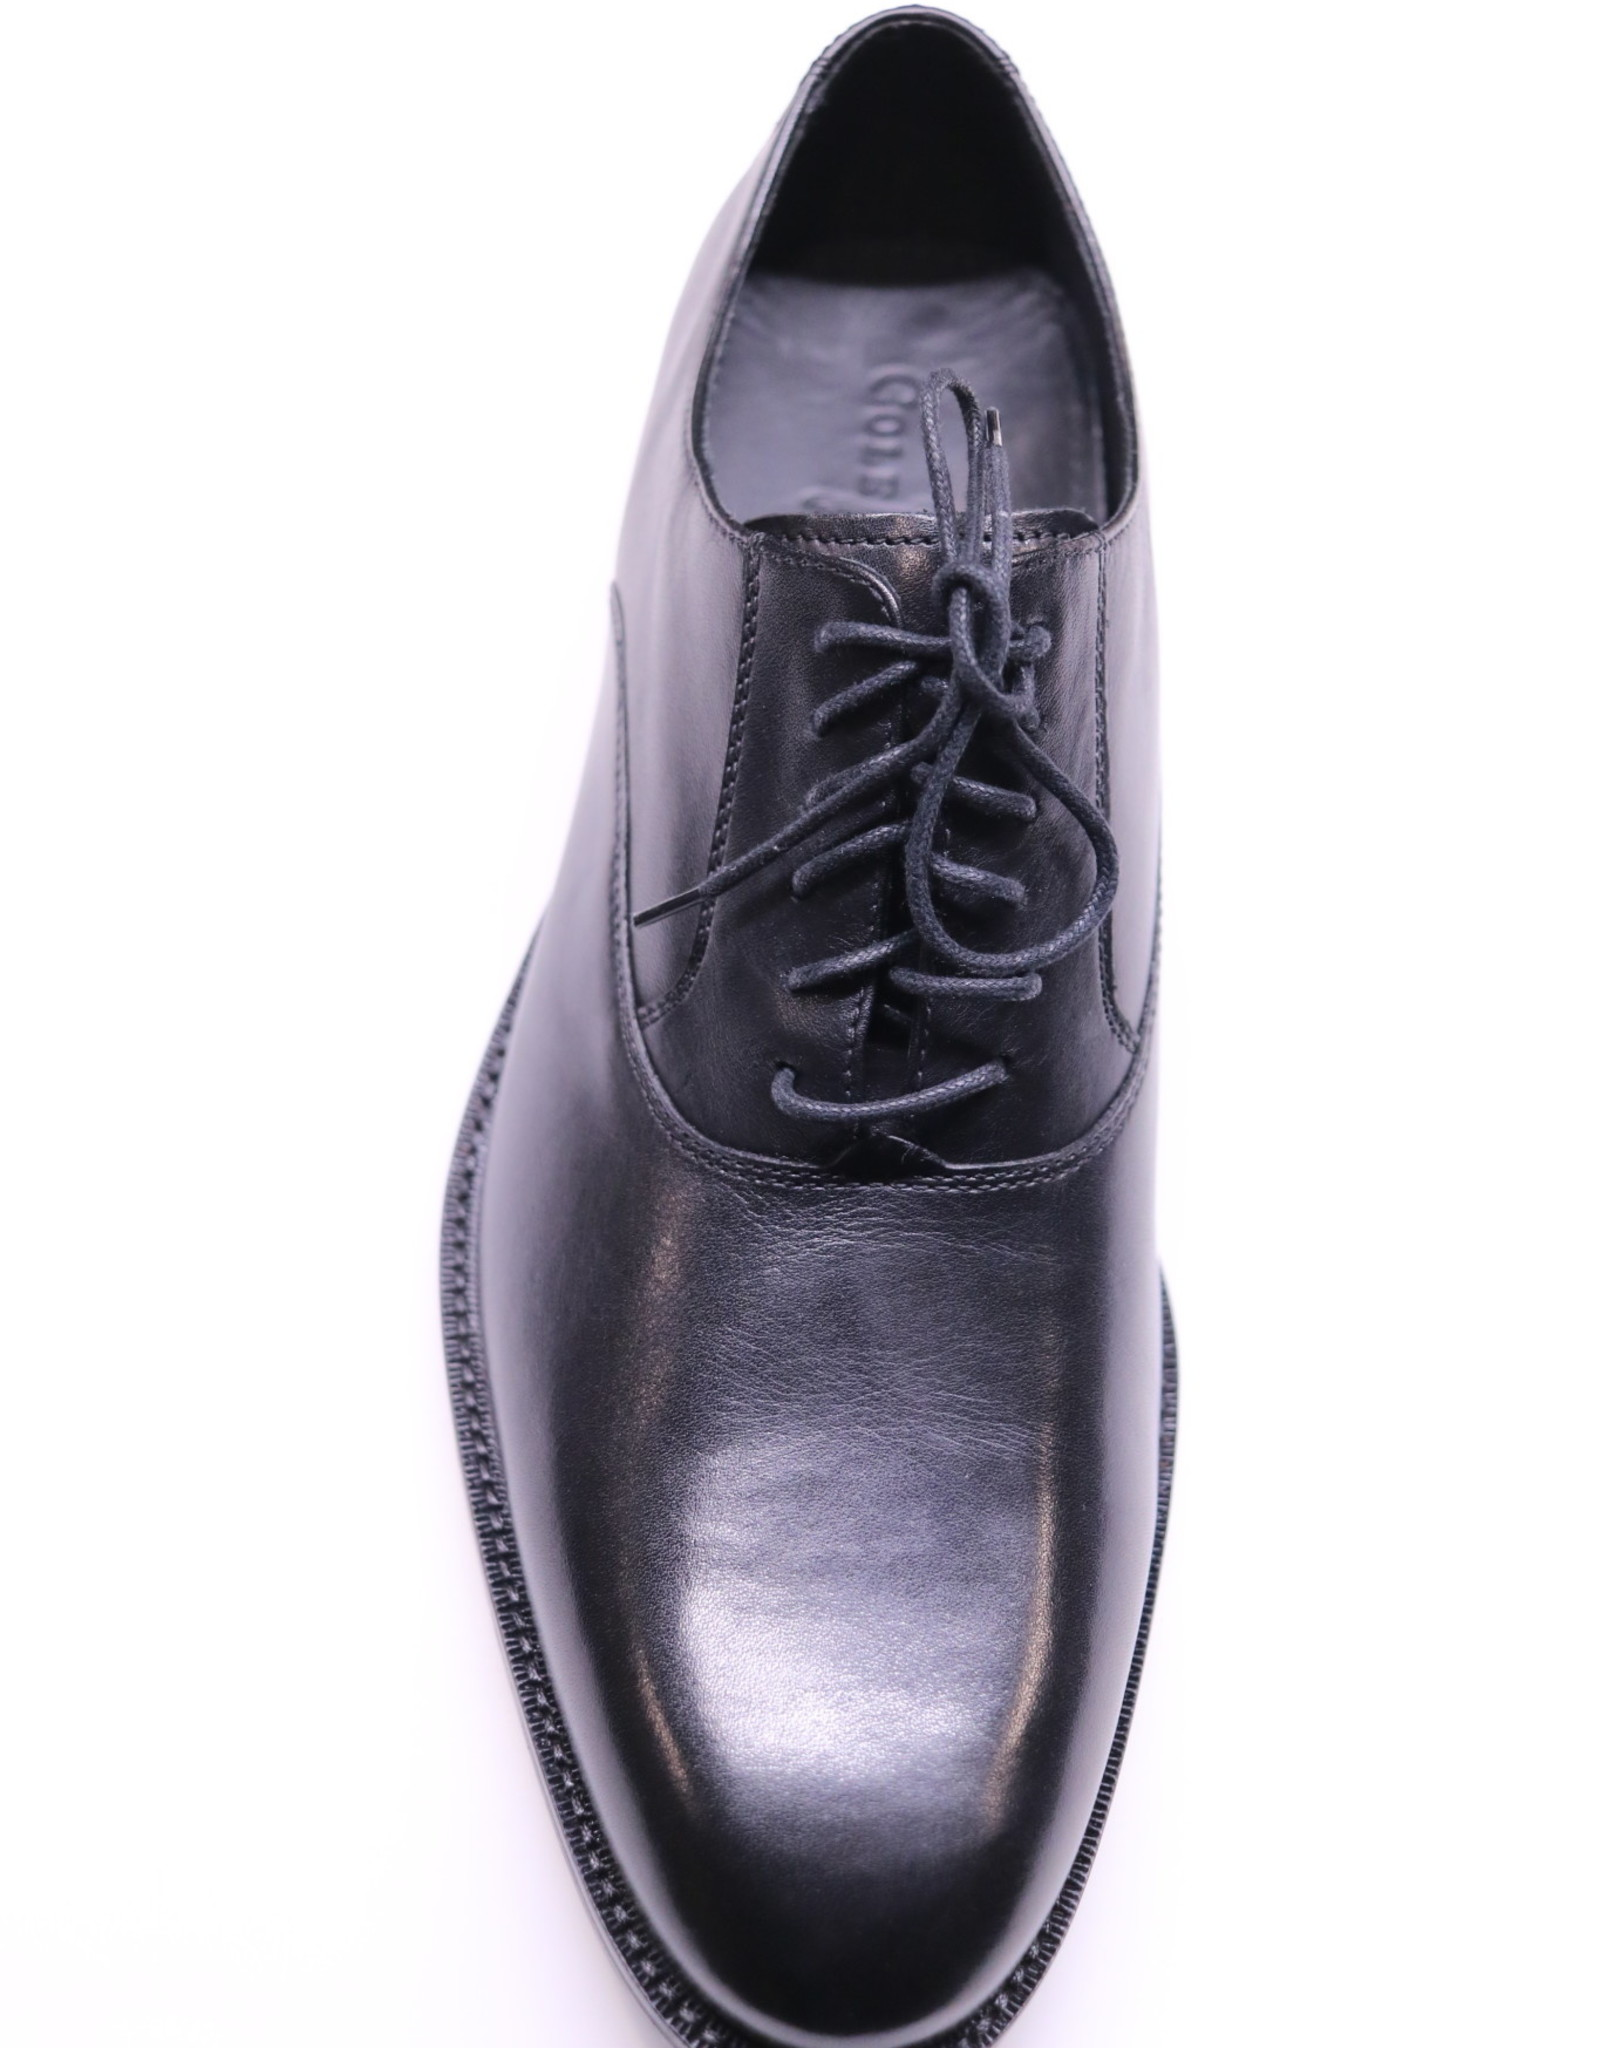 COLE HAAN C10243B   Black Madison Plain OX Size11.5 Reg $275